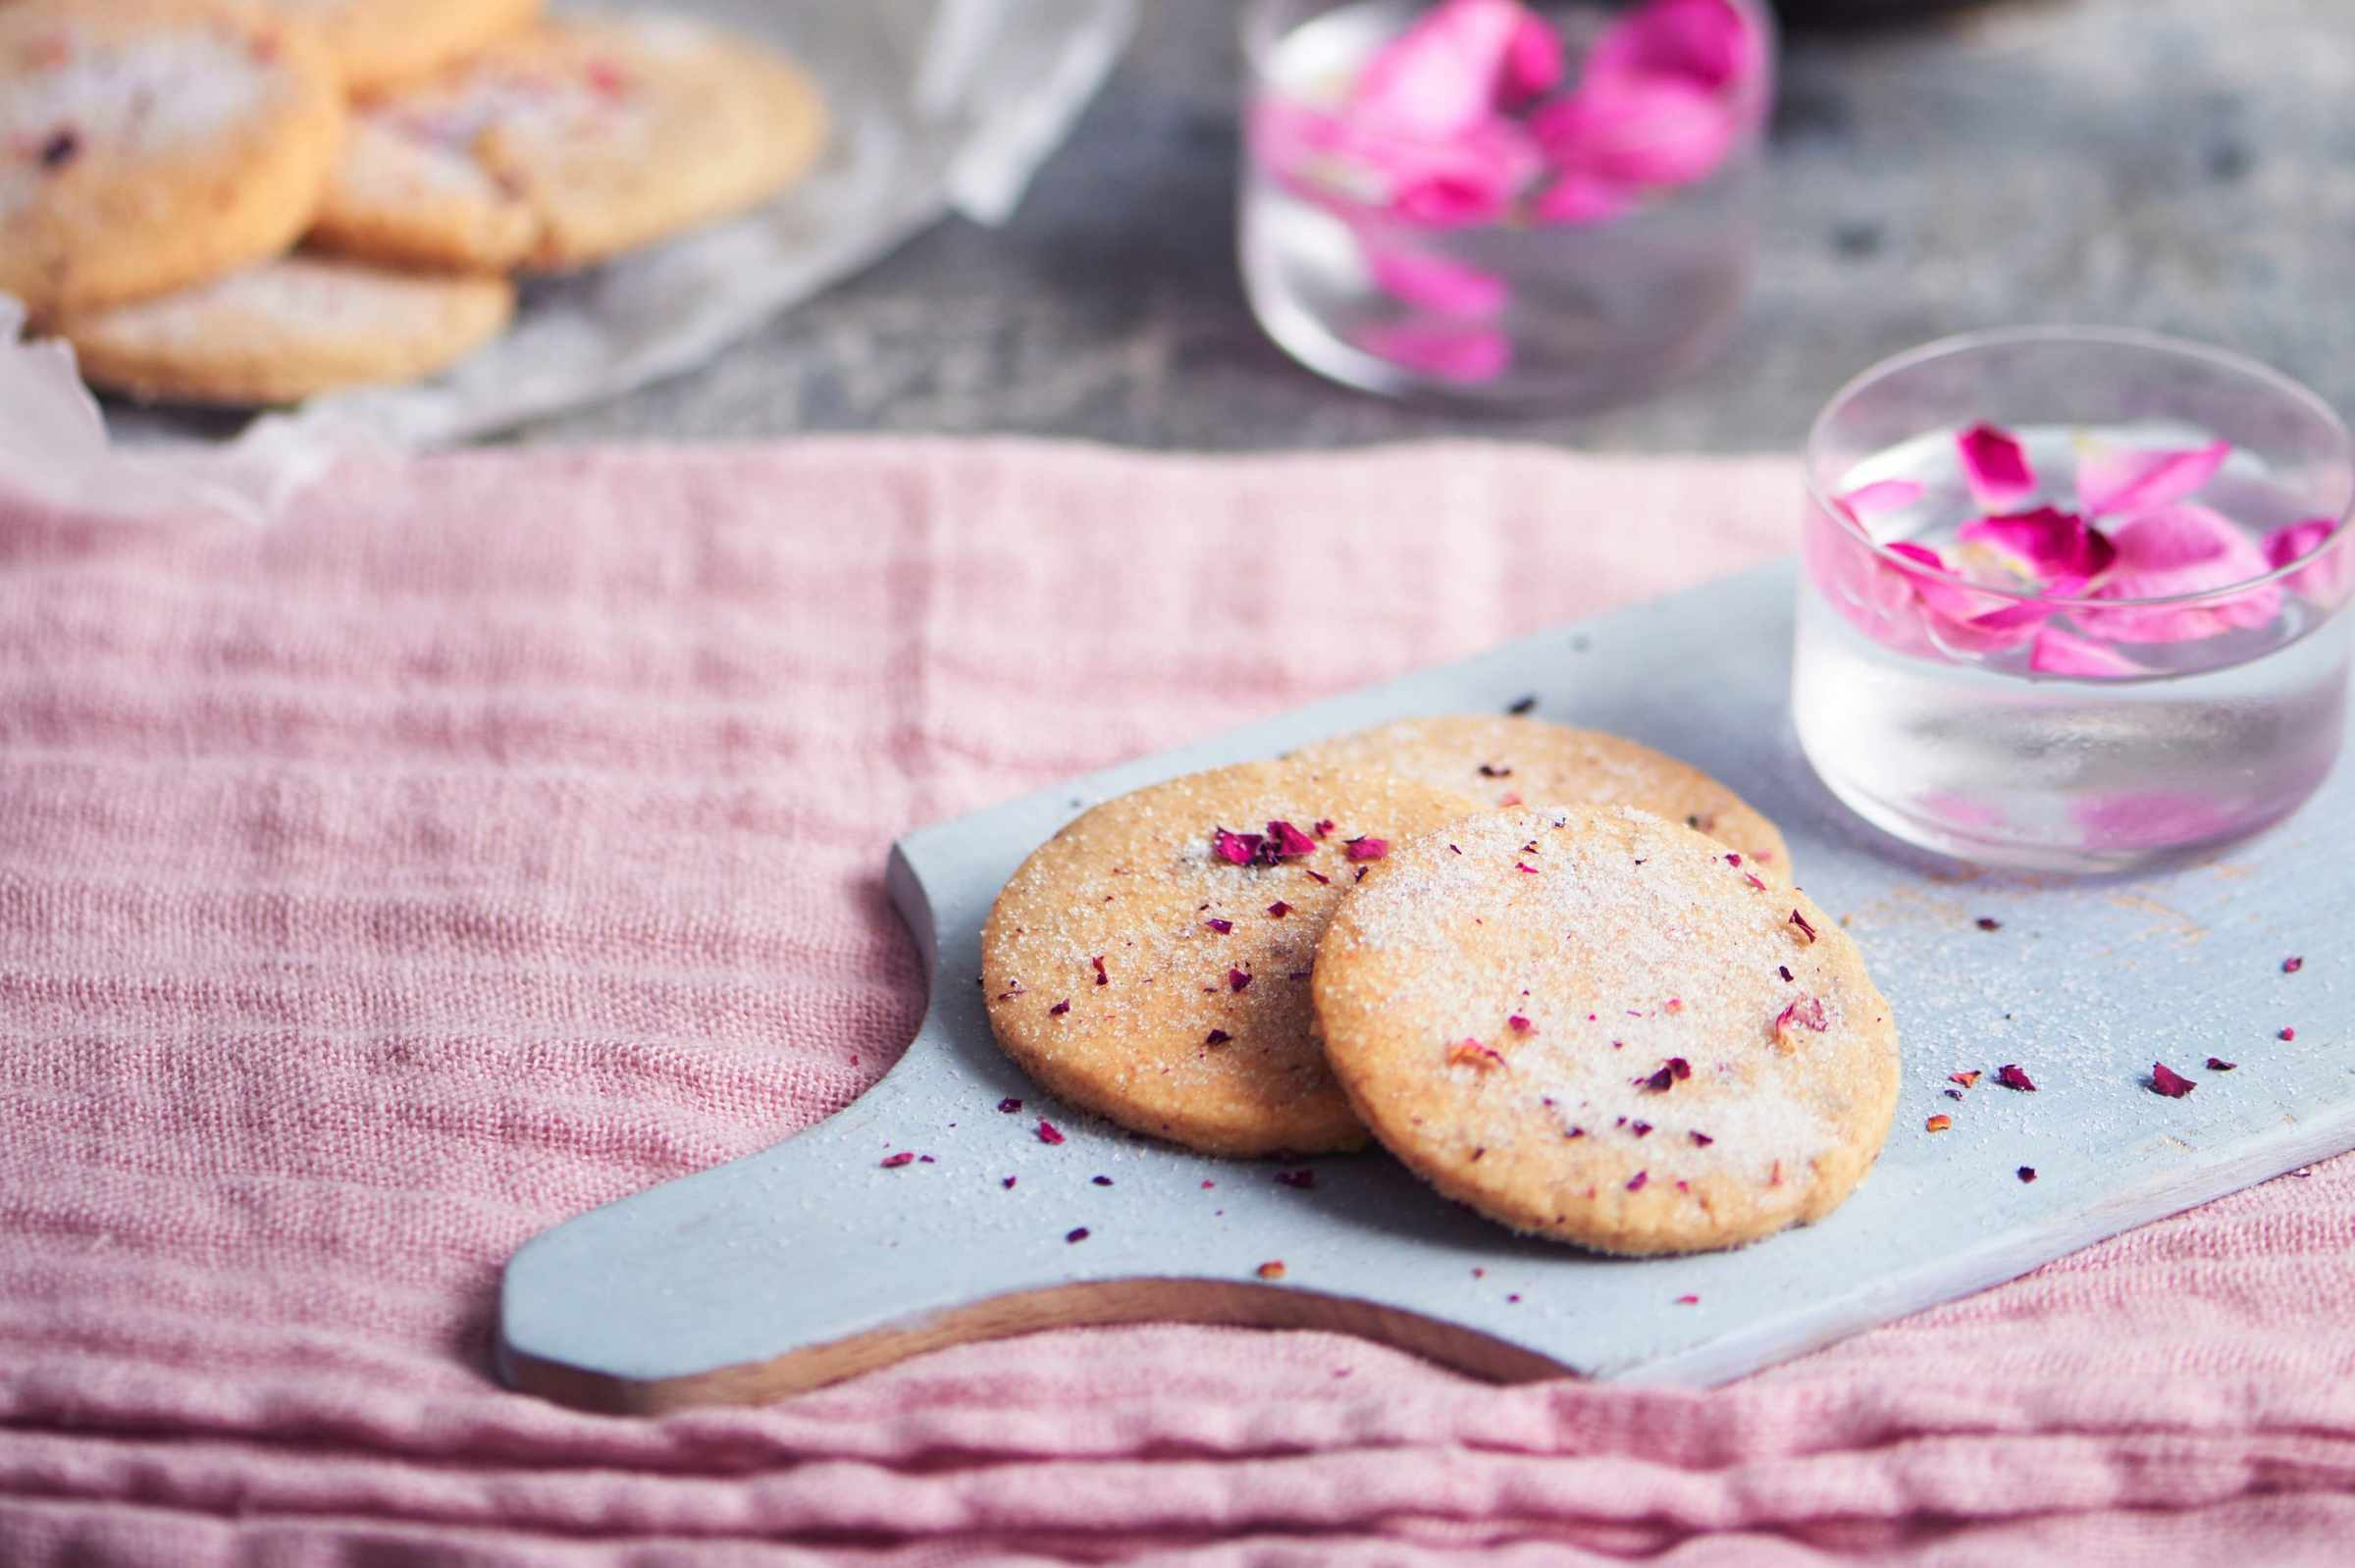 Cinnamon and rose shortbread ©Polly Webster